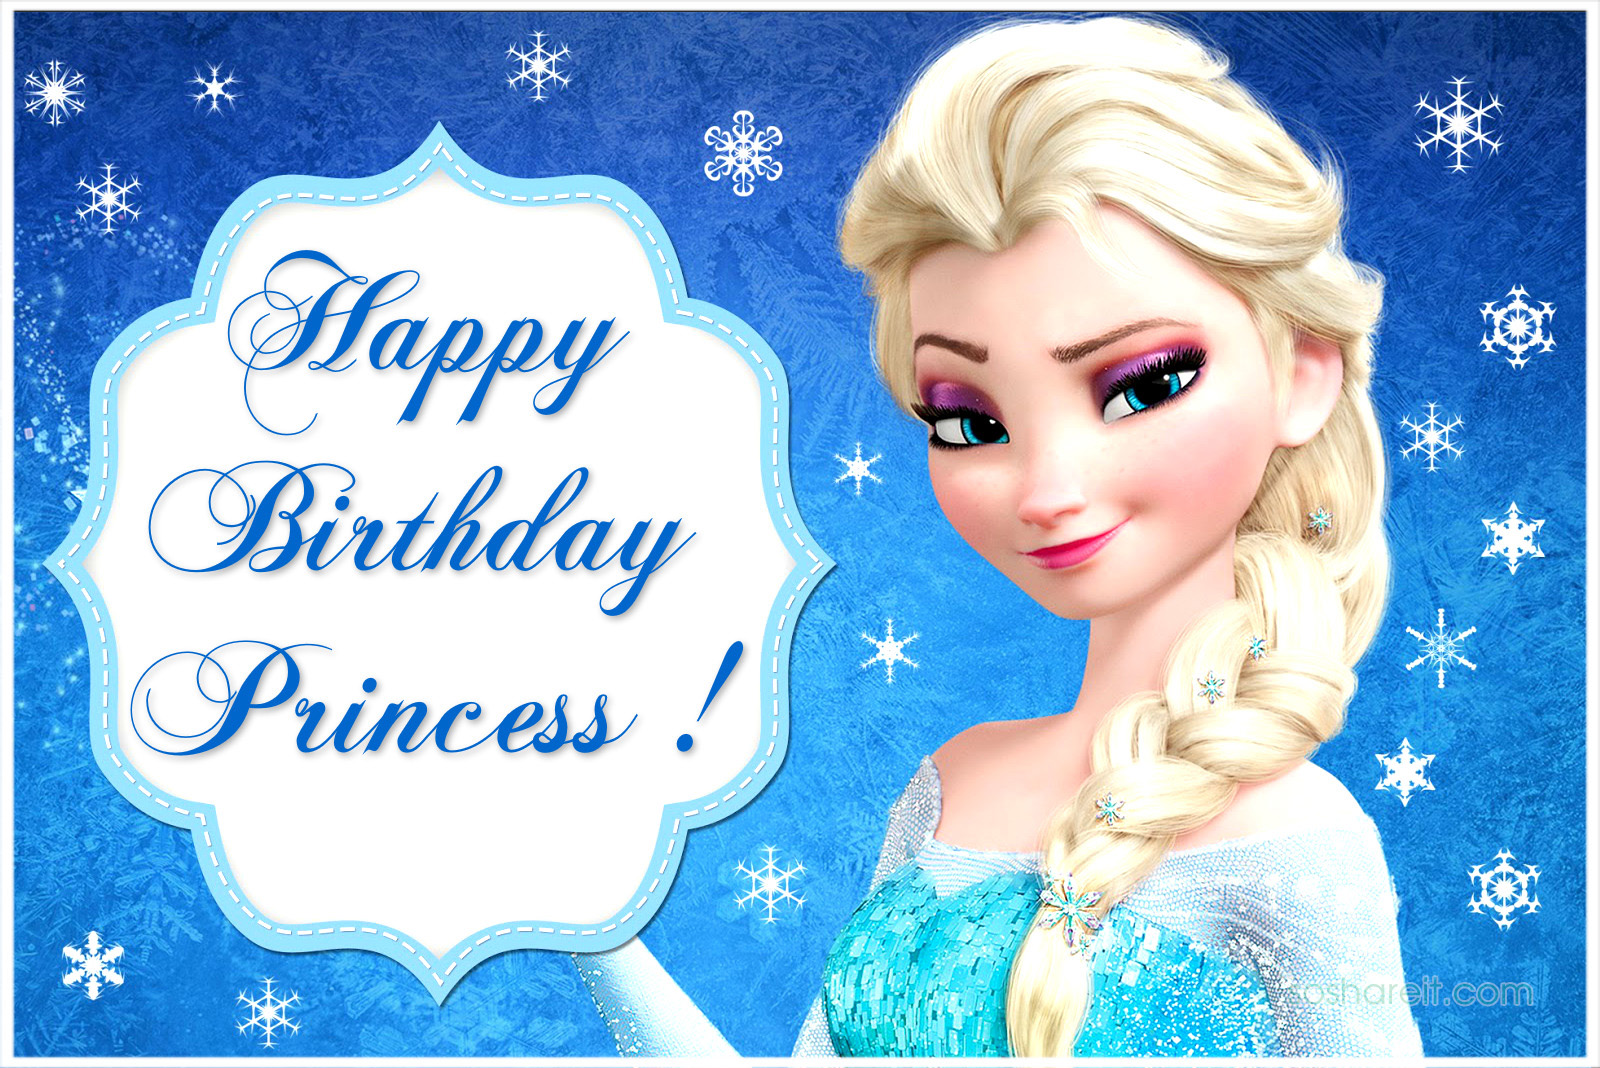 Happy Birthday Princess Quotes & Wallpapers